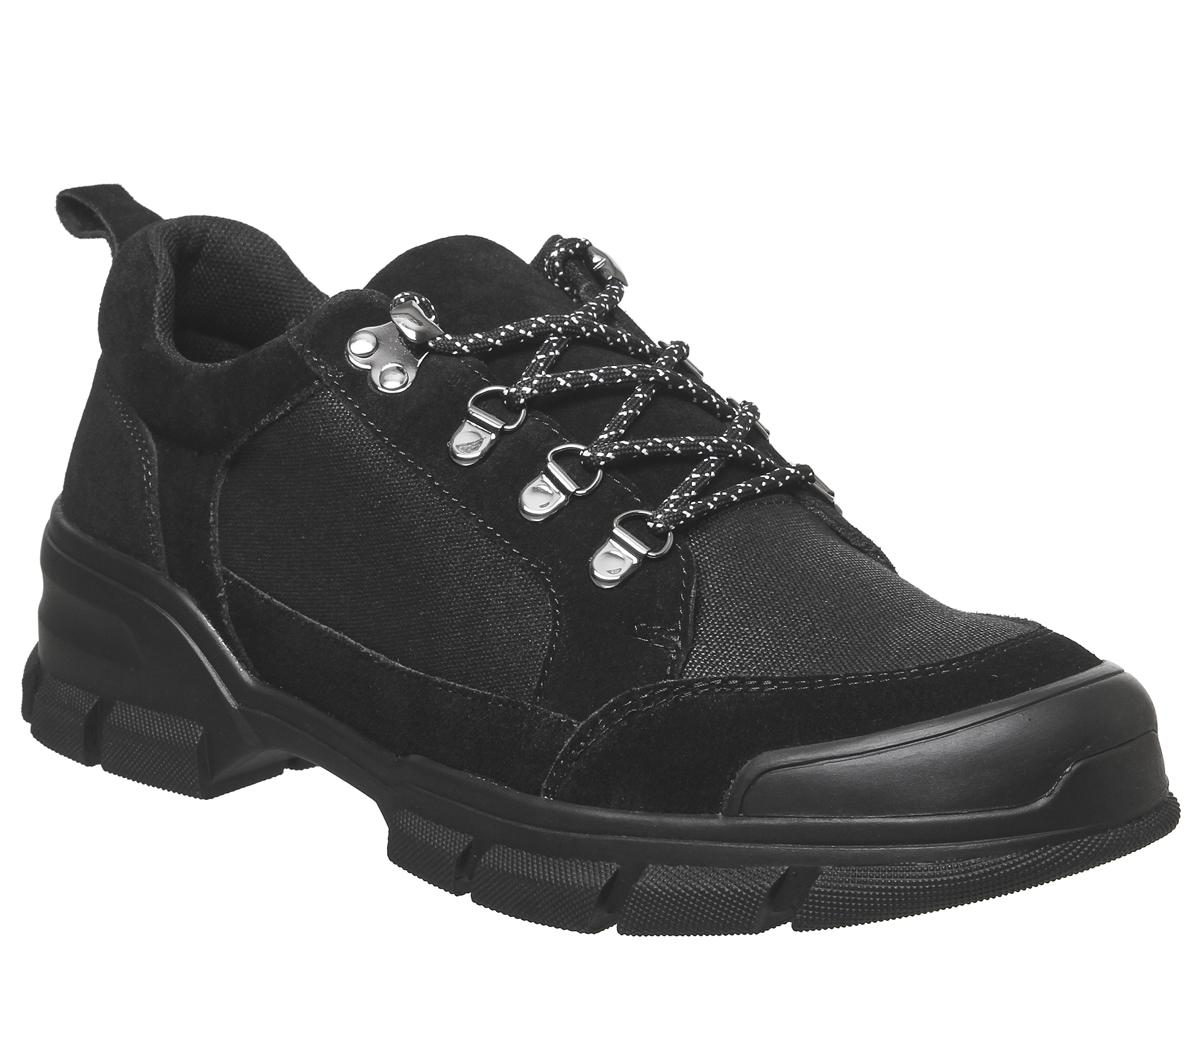 Carter Hiker Shoe